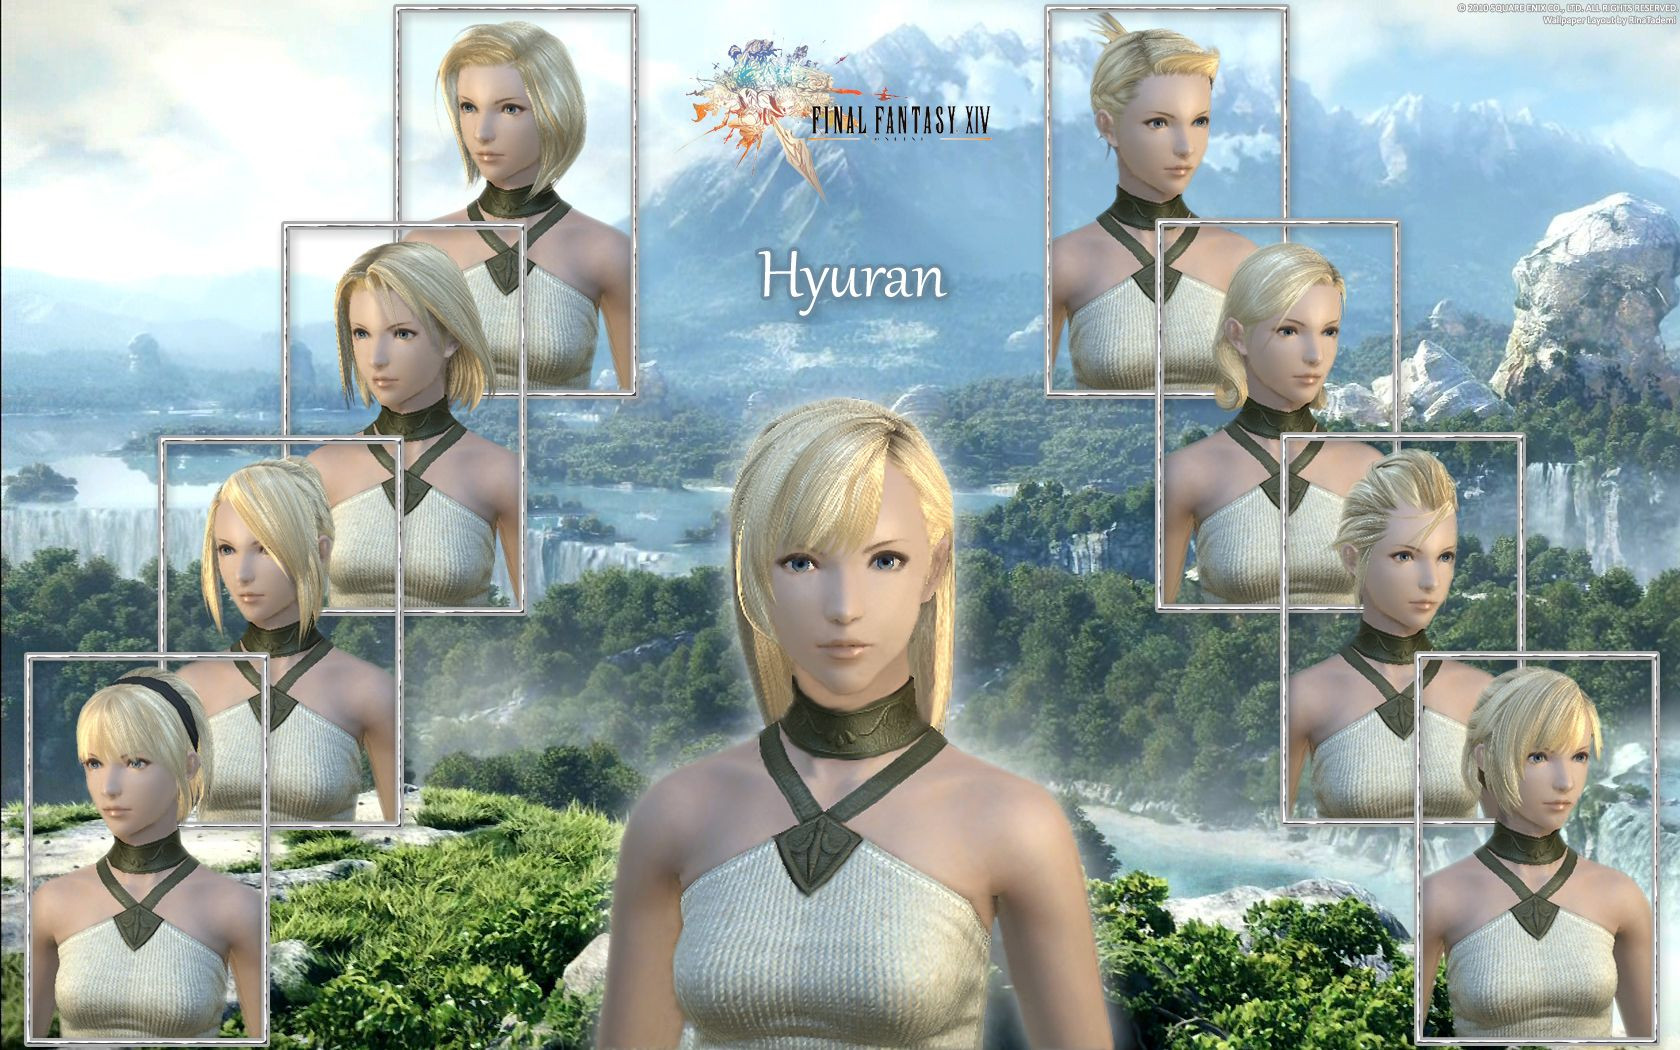 Best ideas about Ffxiv Female Hairstyles . Save or Pin Games FFXIV Hyuran Female Hairstyle Wallpaper desktop Now.